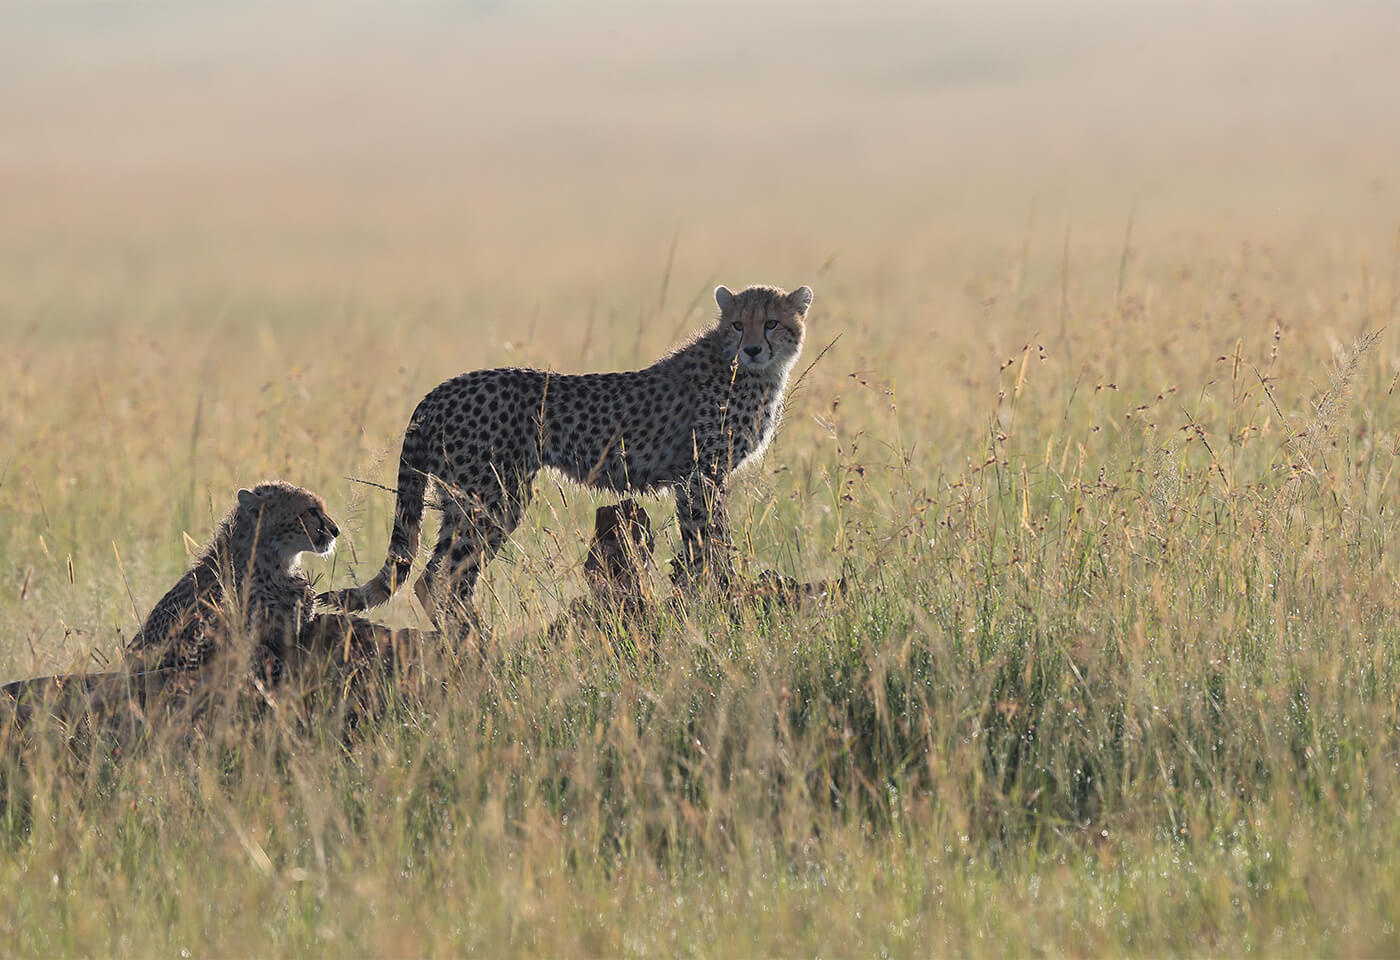 Tales by light of a cheetah in Africa